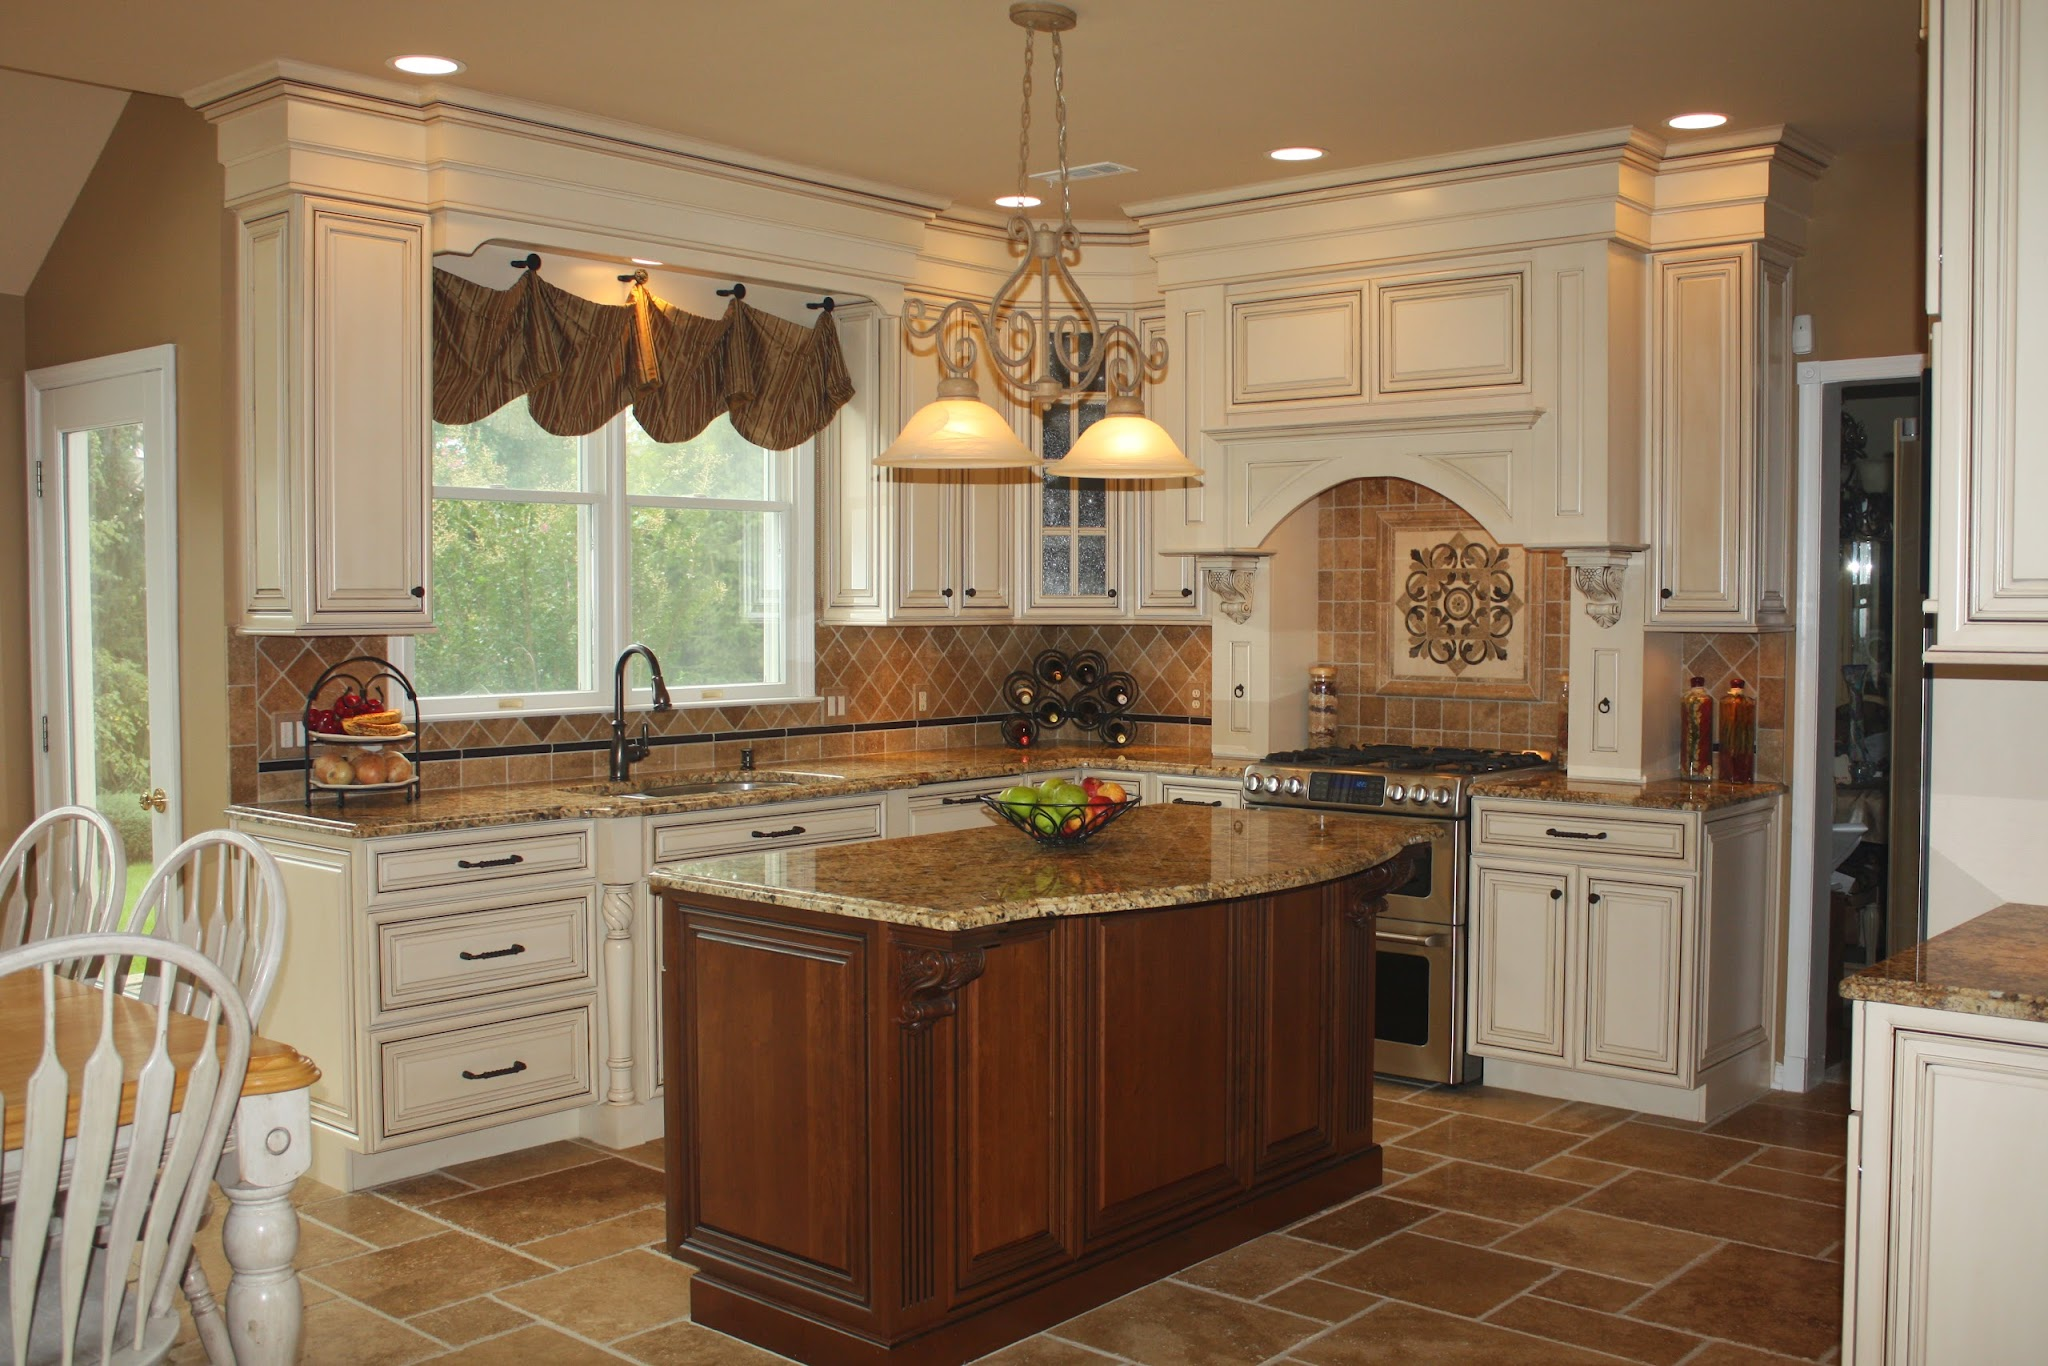 Houzz kitchen dreams house furniture for Kitchen design houzz